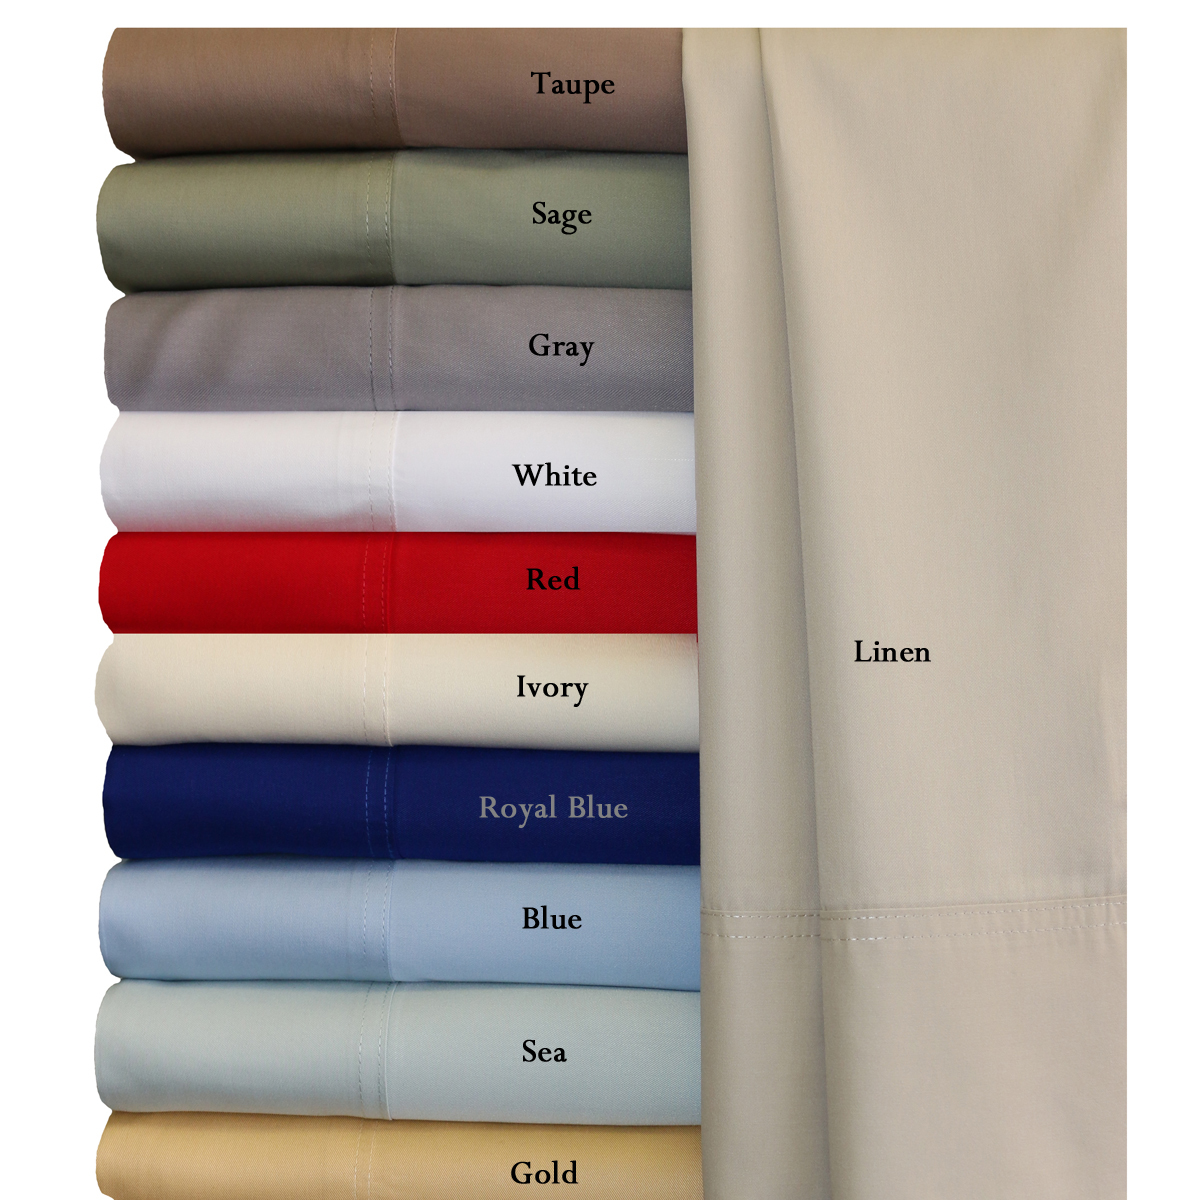 "Royal Tradition. Super Soft 100% Viscose from Bamboo Sheet Sets. Wrap your self in the softness of the luxurious 100% Rayon from Bamboo sheets like those found in royalty homes. You won't be able to go back to cotton sheets after trying these 100% Viscose from Bamboo sheets. Amazingly soft similar to cashmere of silk. 60% more absorbent than cotton. Sustainable, fast growth rate over 1 meter per day. Requires significantly less pesticides than cotton and is naturally irrigated. Natural anti-bacterial and deodorizing properties.*"" Viscose from Bamboo "" or "" Rayon from Bamboo"" are both interchangeable common terms used when referring the Bamboo fabric derivatives. Bamboo woods undergo additional process before the fibers are spun into yarns. Therefore, bamboo yarns are turned into a Viscose or Rayon than woven to create bamboo fabrics.* Bamboo is one of the fastest growing plants because of it's ability to absorb water and is thus a very environmentally friendly material. These are the "" Greenest Sheets"" around. This explain why bamboo sheets wick so much water away from the body, keeping people dry and comfortable. Machine wash in cold water.Delicate cycle with mild detergent. No Bleach. Tumble Dry on low heat. Remove immediately at end of cycle. Press with warm iron if needed. Do not Use Hot water."